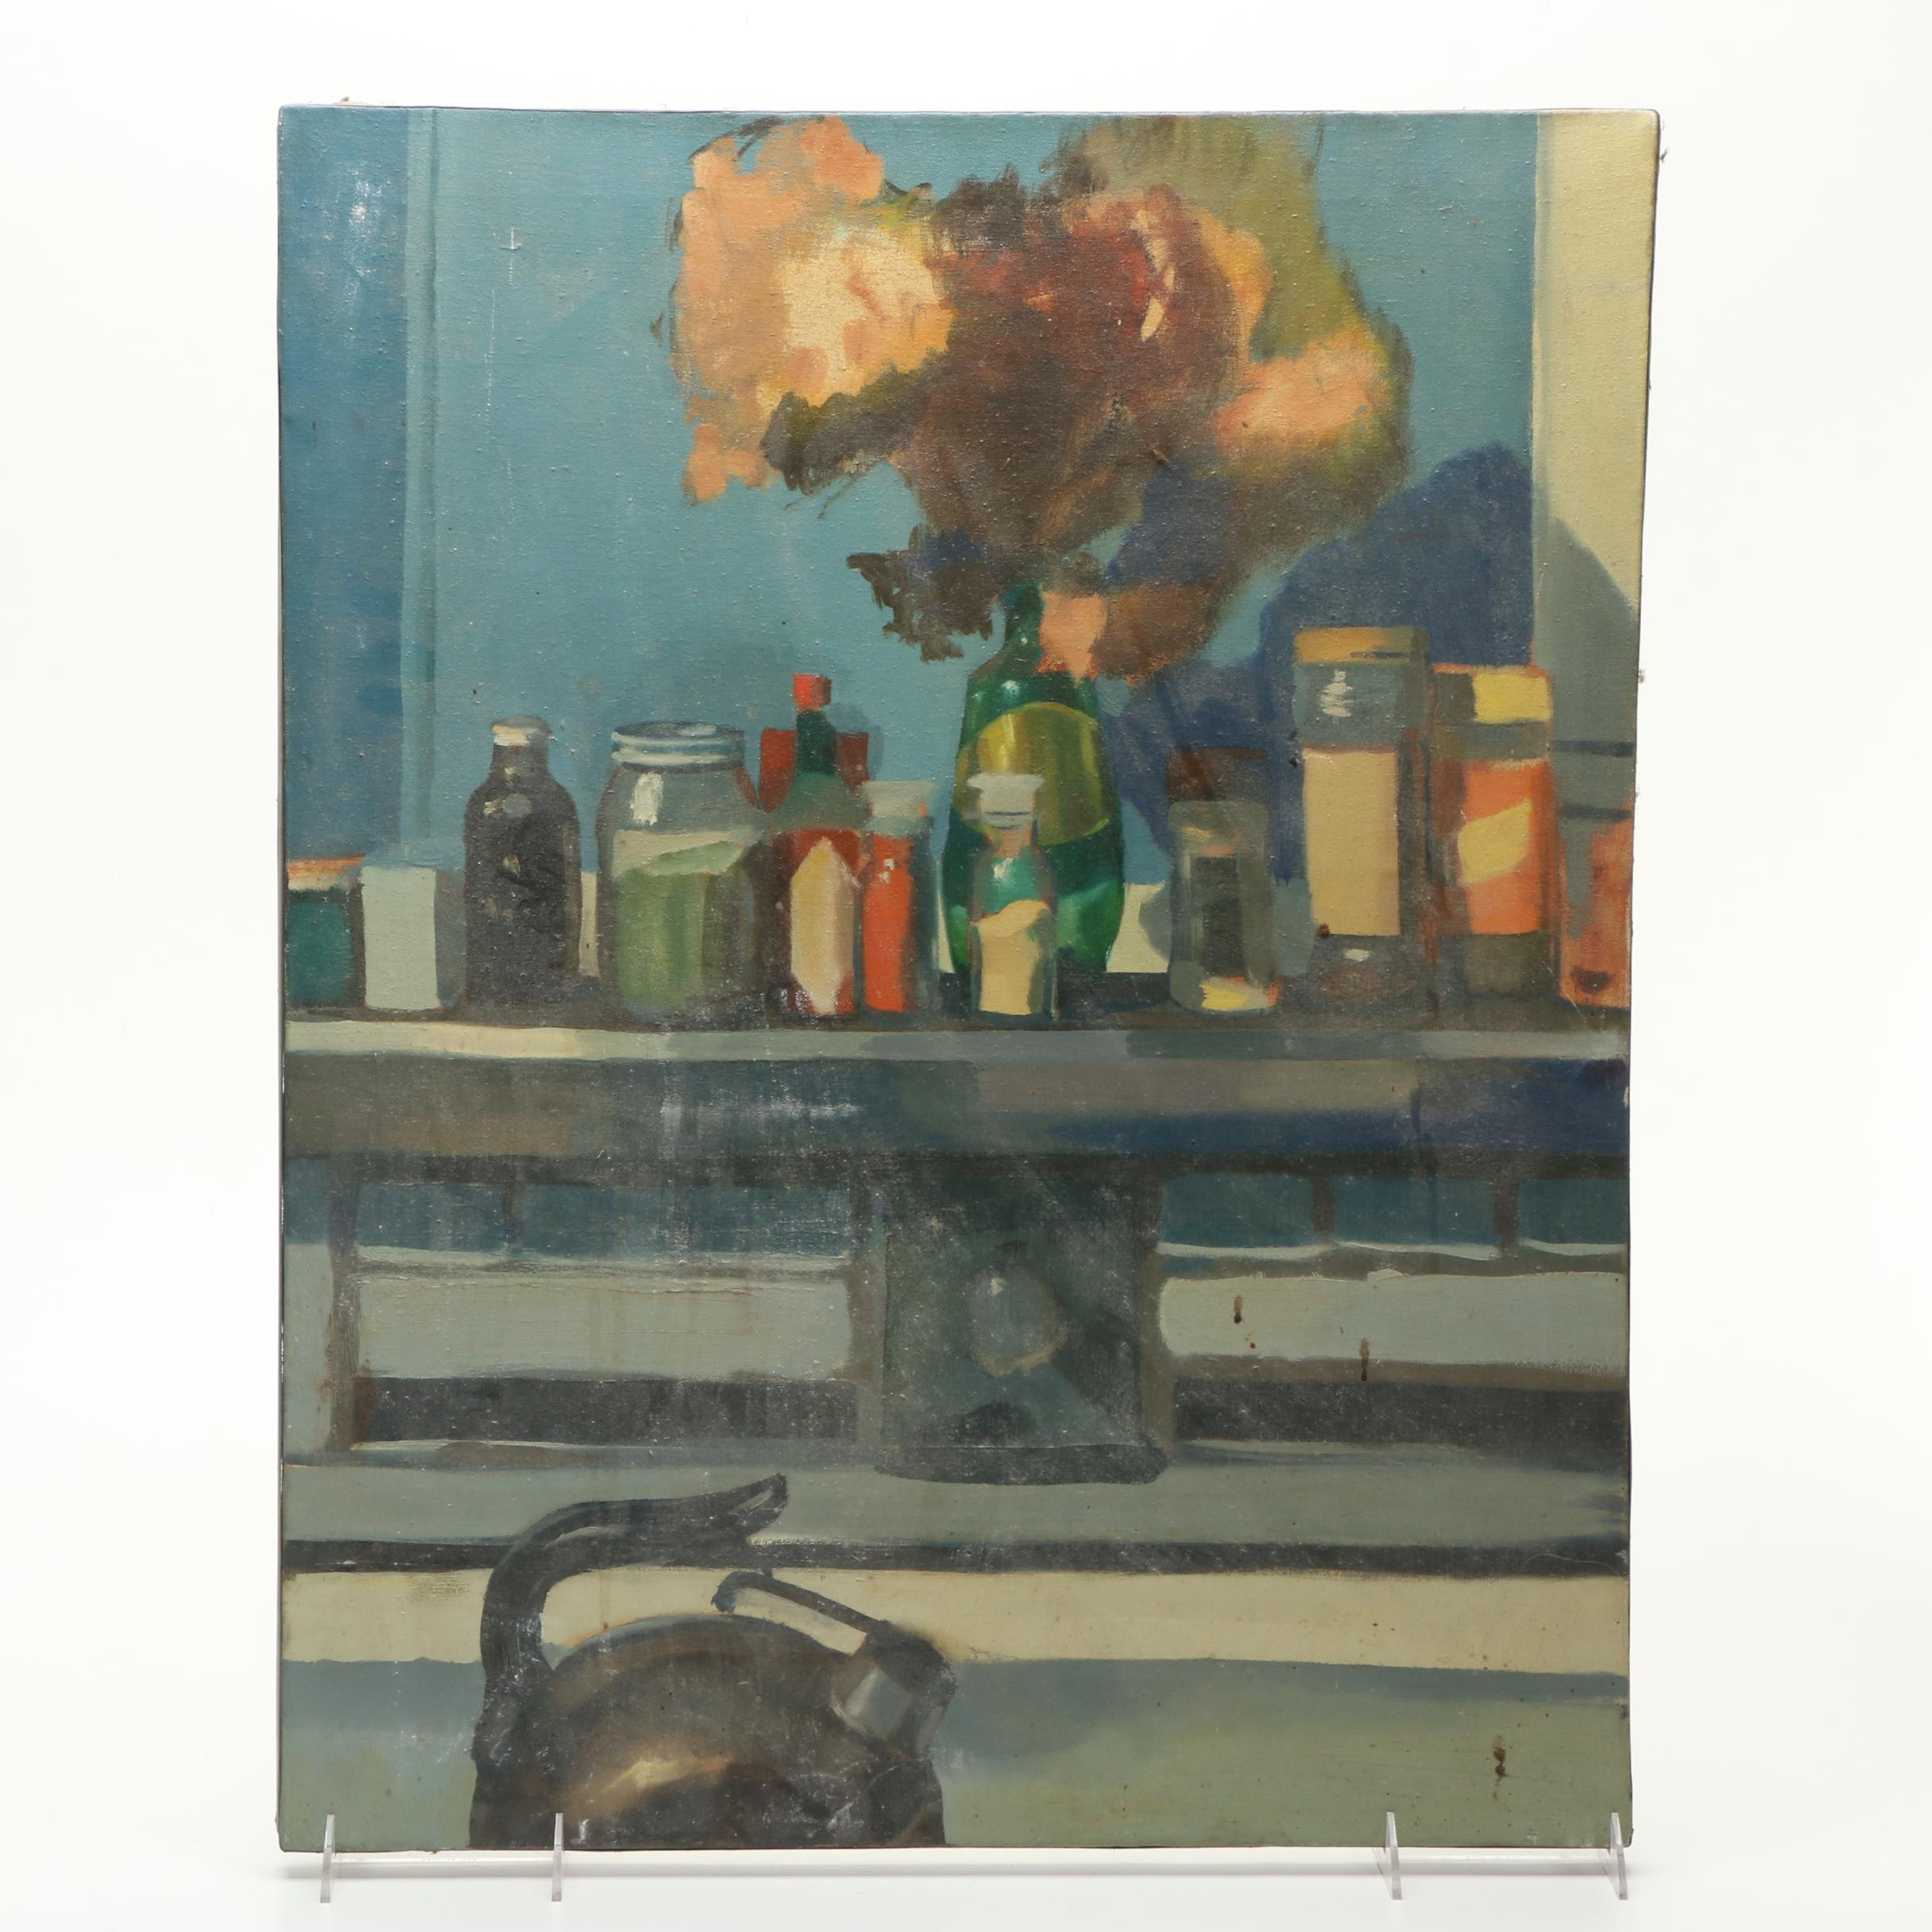 Vintage Oil Painting on Canvas of a Still Life